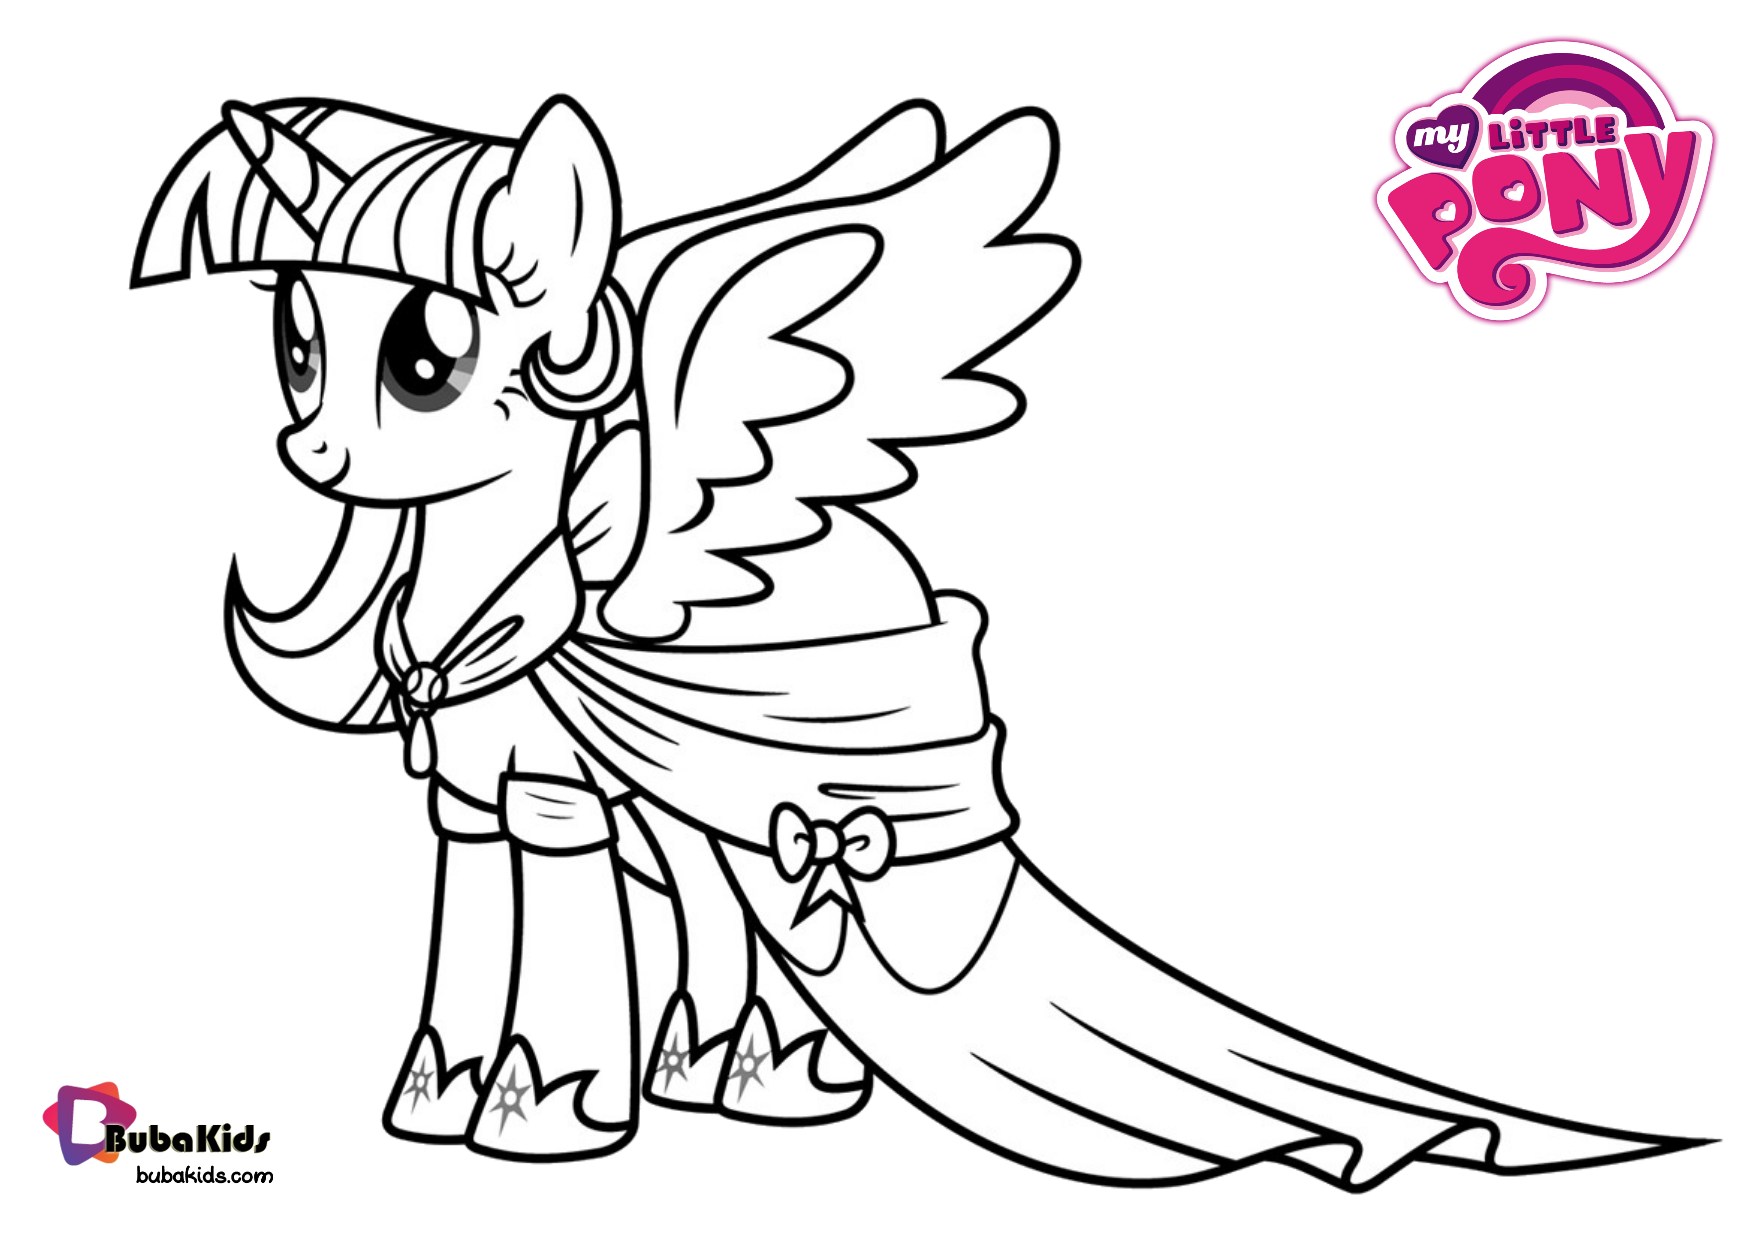 My Little Pony Coloring Pages Princess Luna Collection Of Cartoon Coloring Pages For Teenage Pr My Little Pony Coloring Cartoon Coloring Pages Coloring Pages